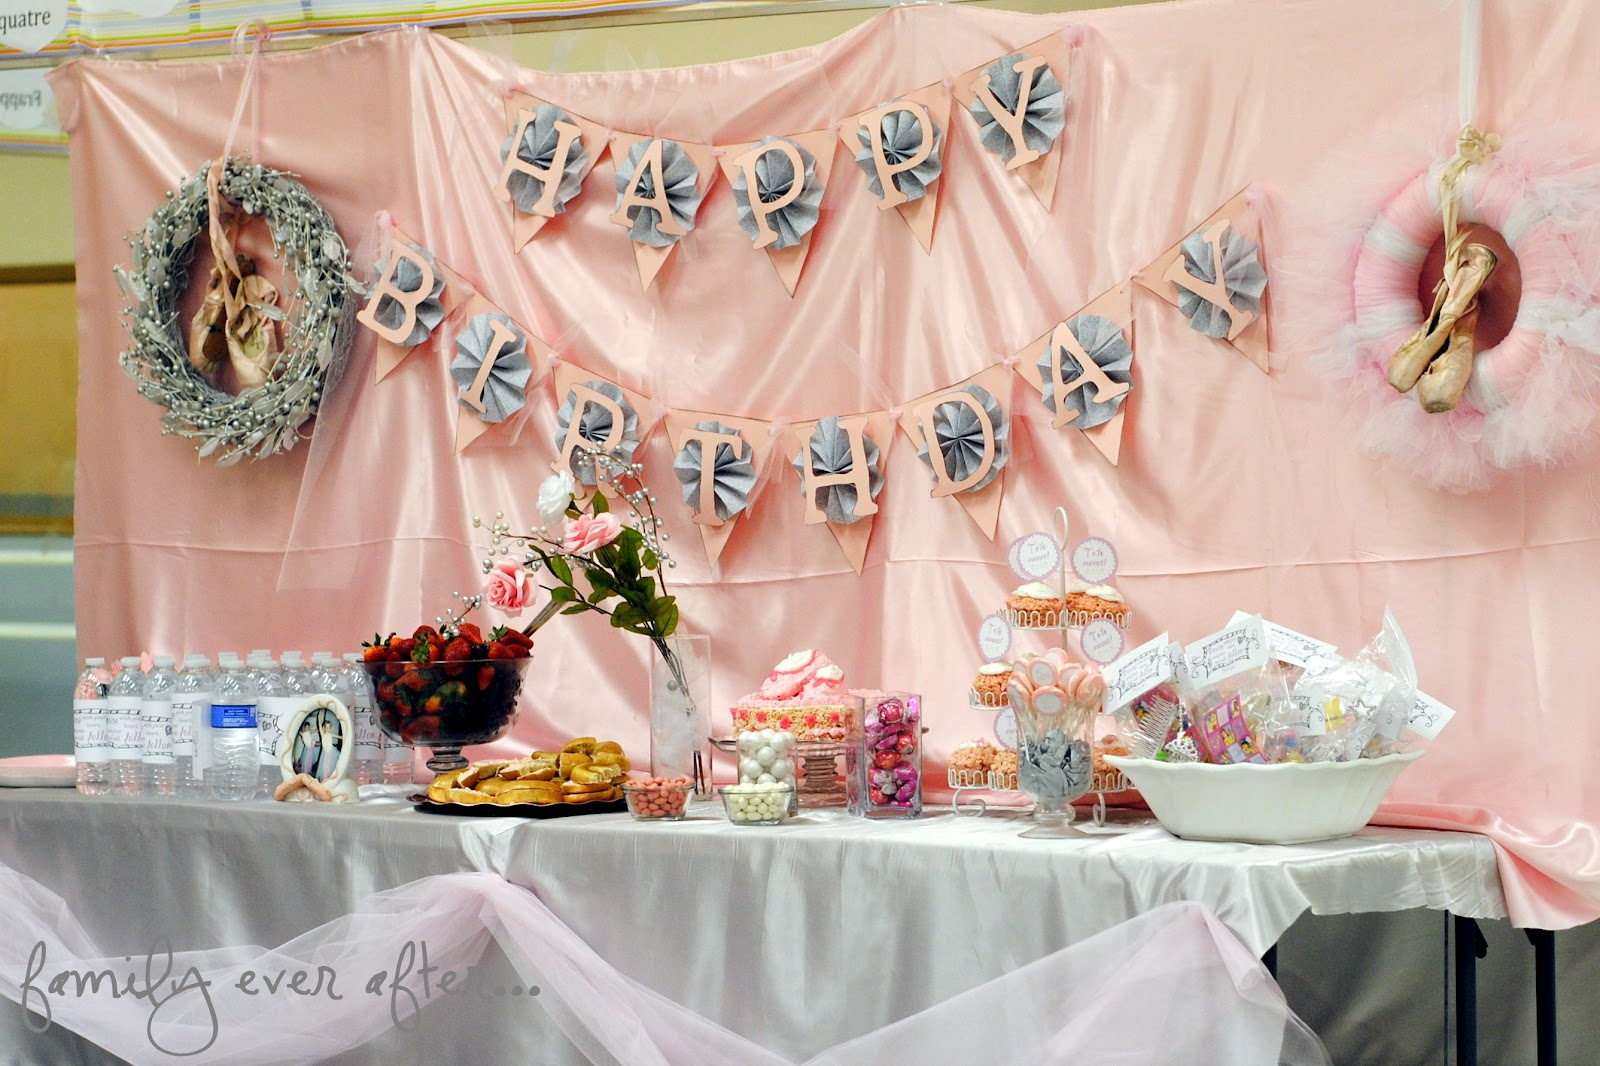 Family ever after ballet birthday party banner for Ballerina party decoration